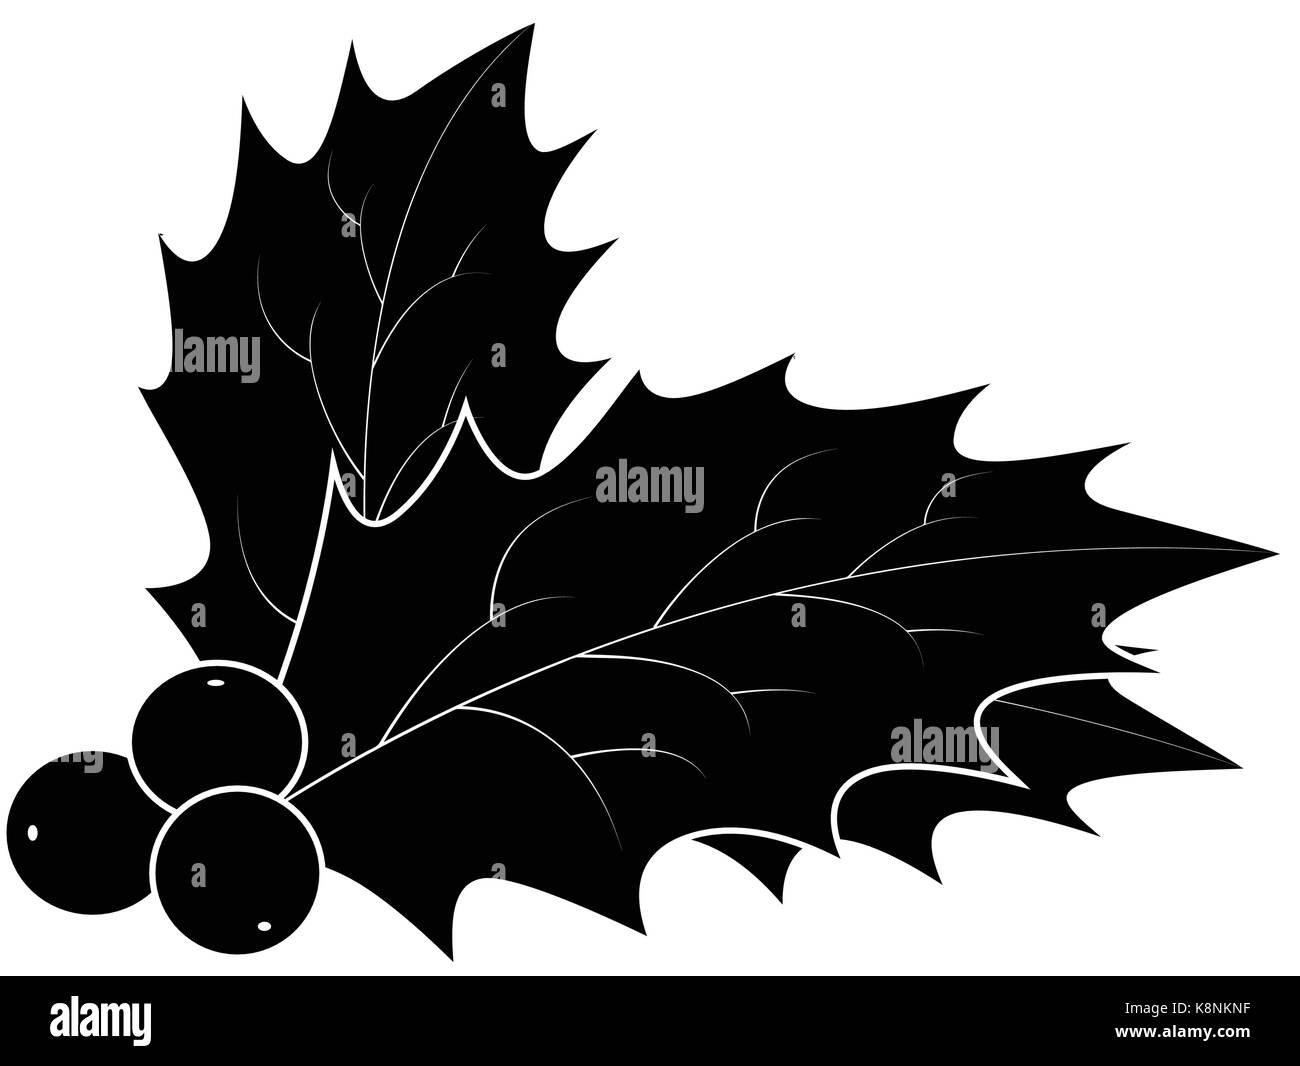 Christmas Holly Silhouette.Holly Berry Silhouette Christmas Leaves And Fruits Icon